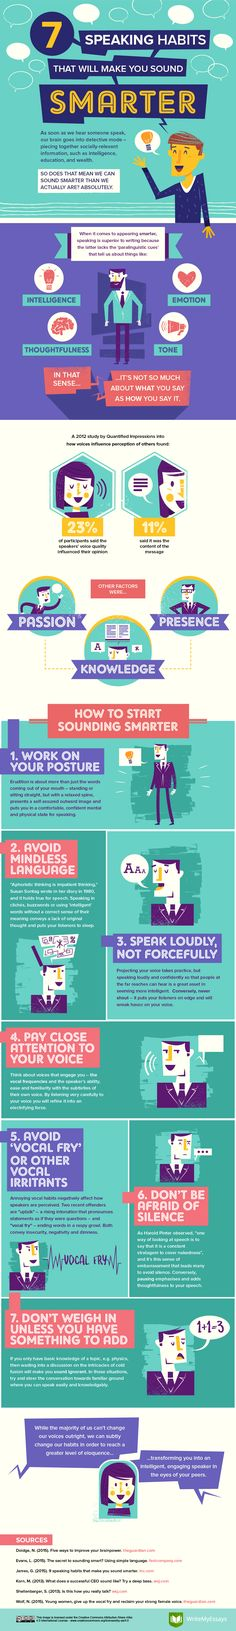 7 Speaking Habits That Will Make You Sound Smarter #infographic #Speaking…